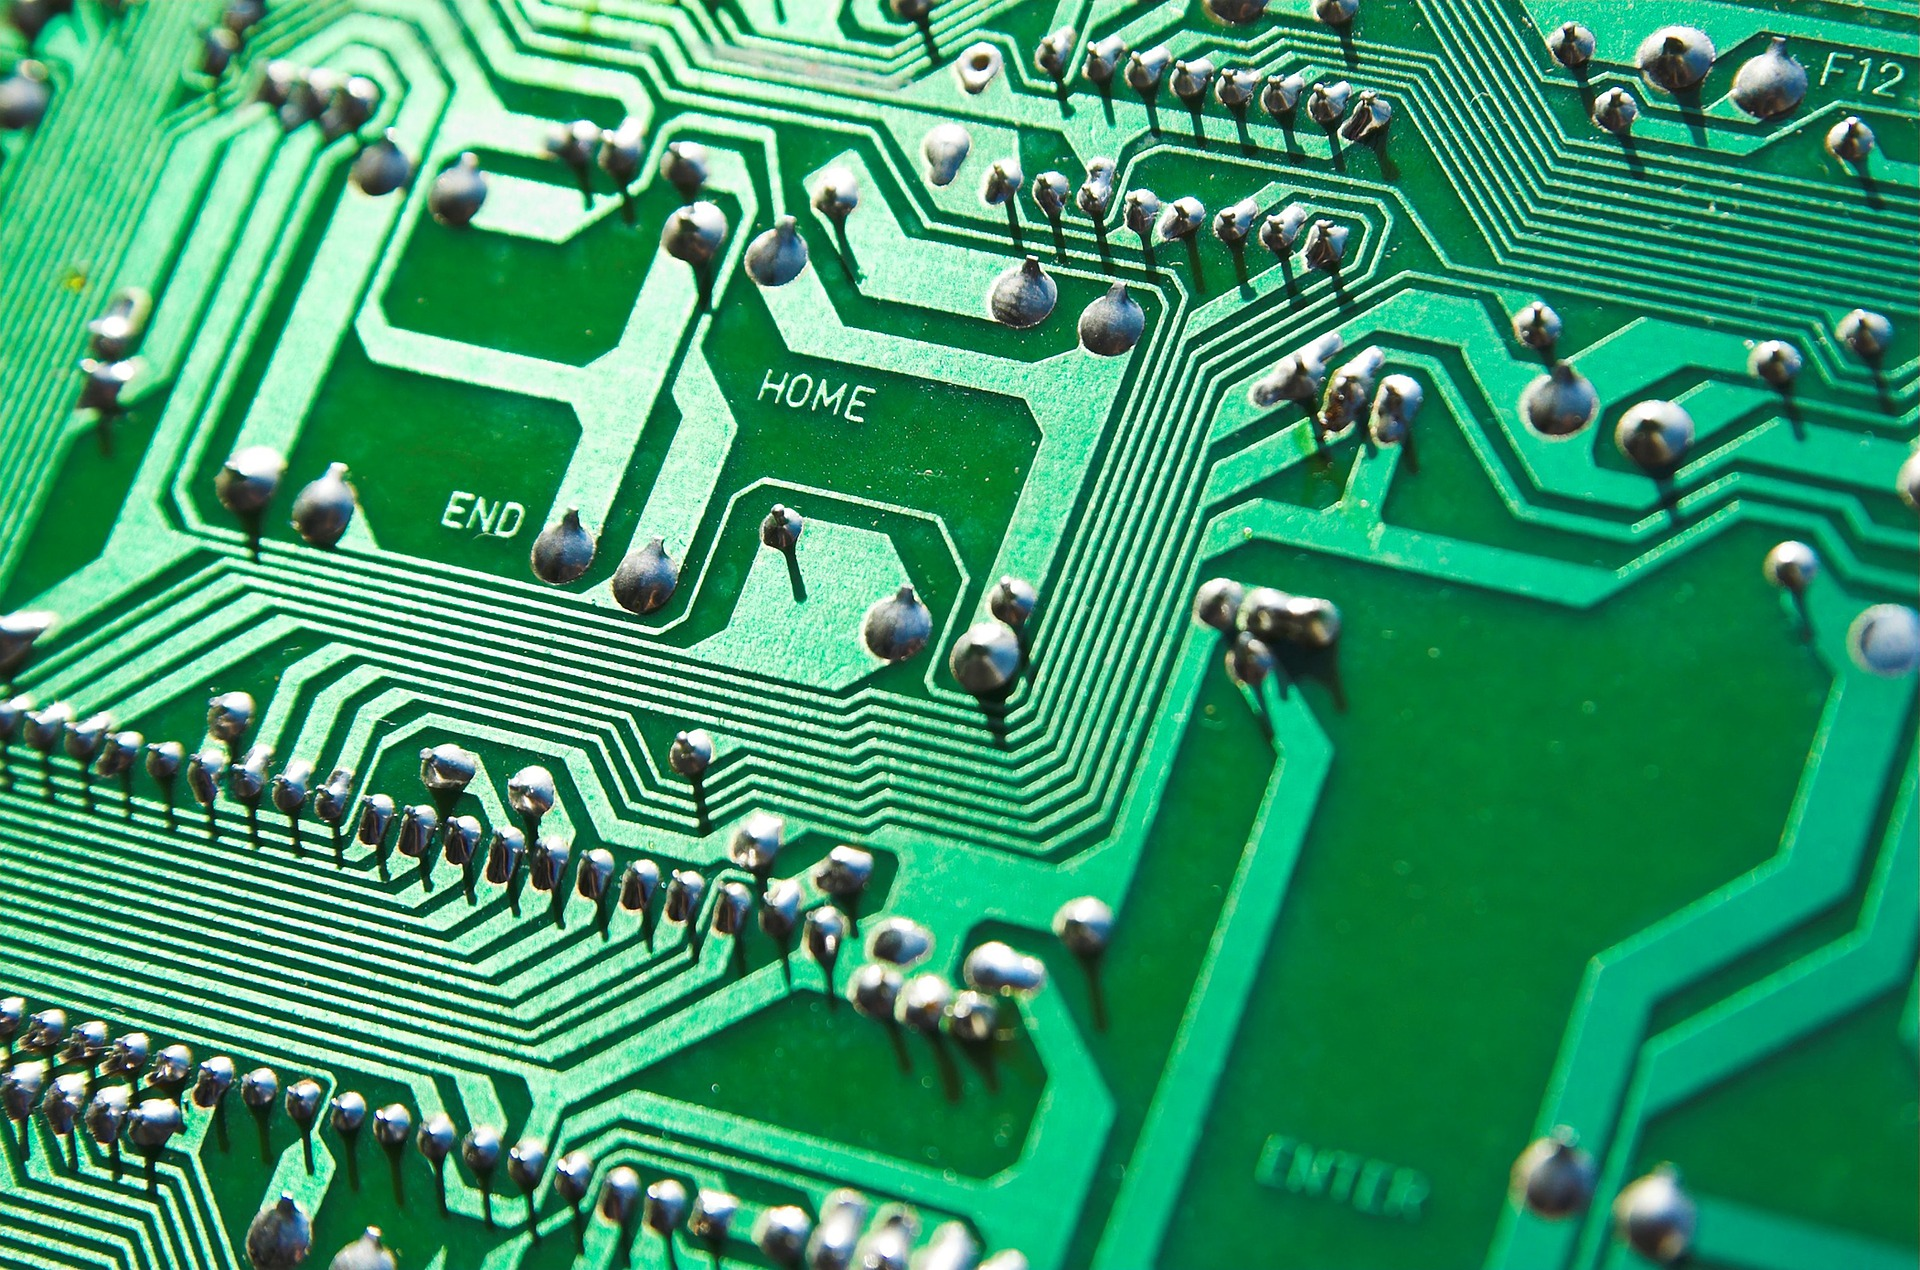 Closeup of the details on a motherboard chip.